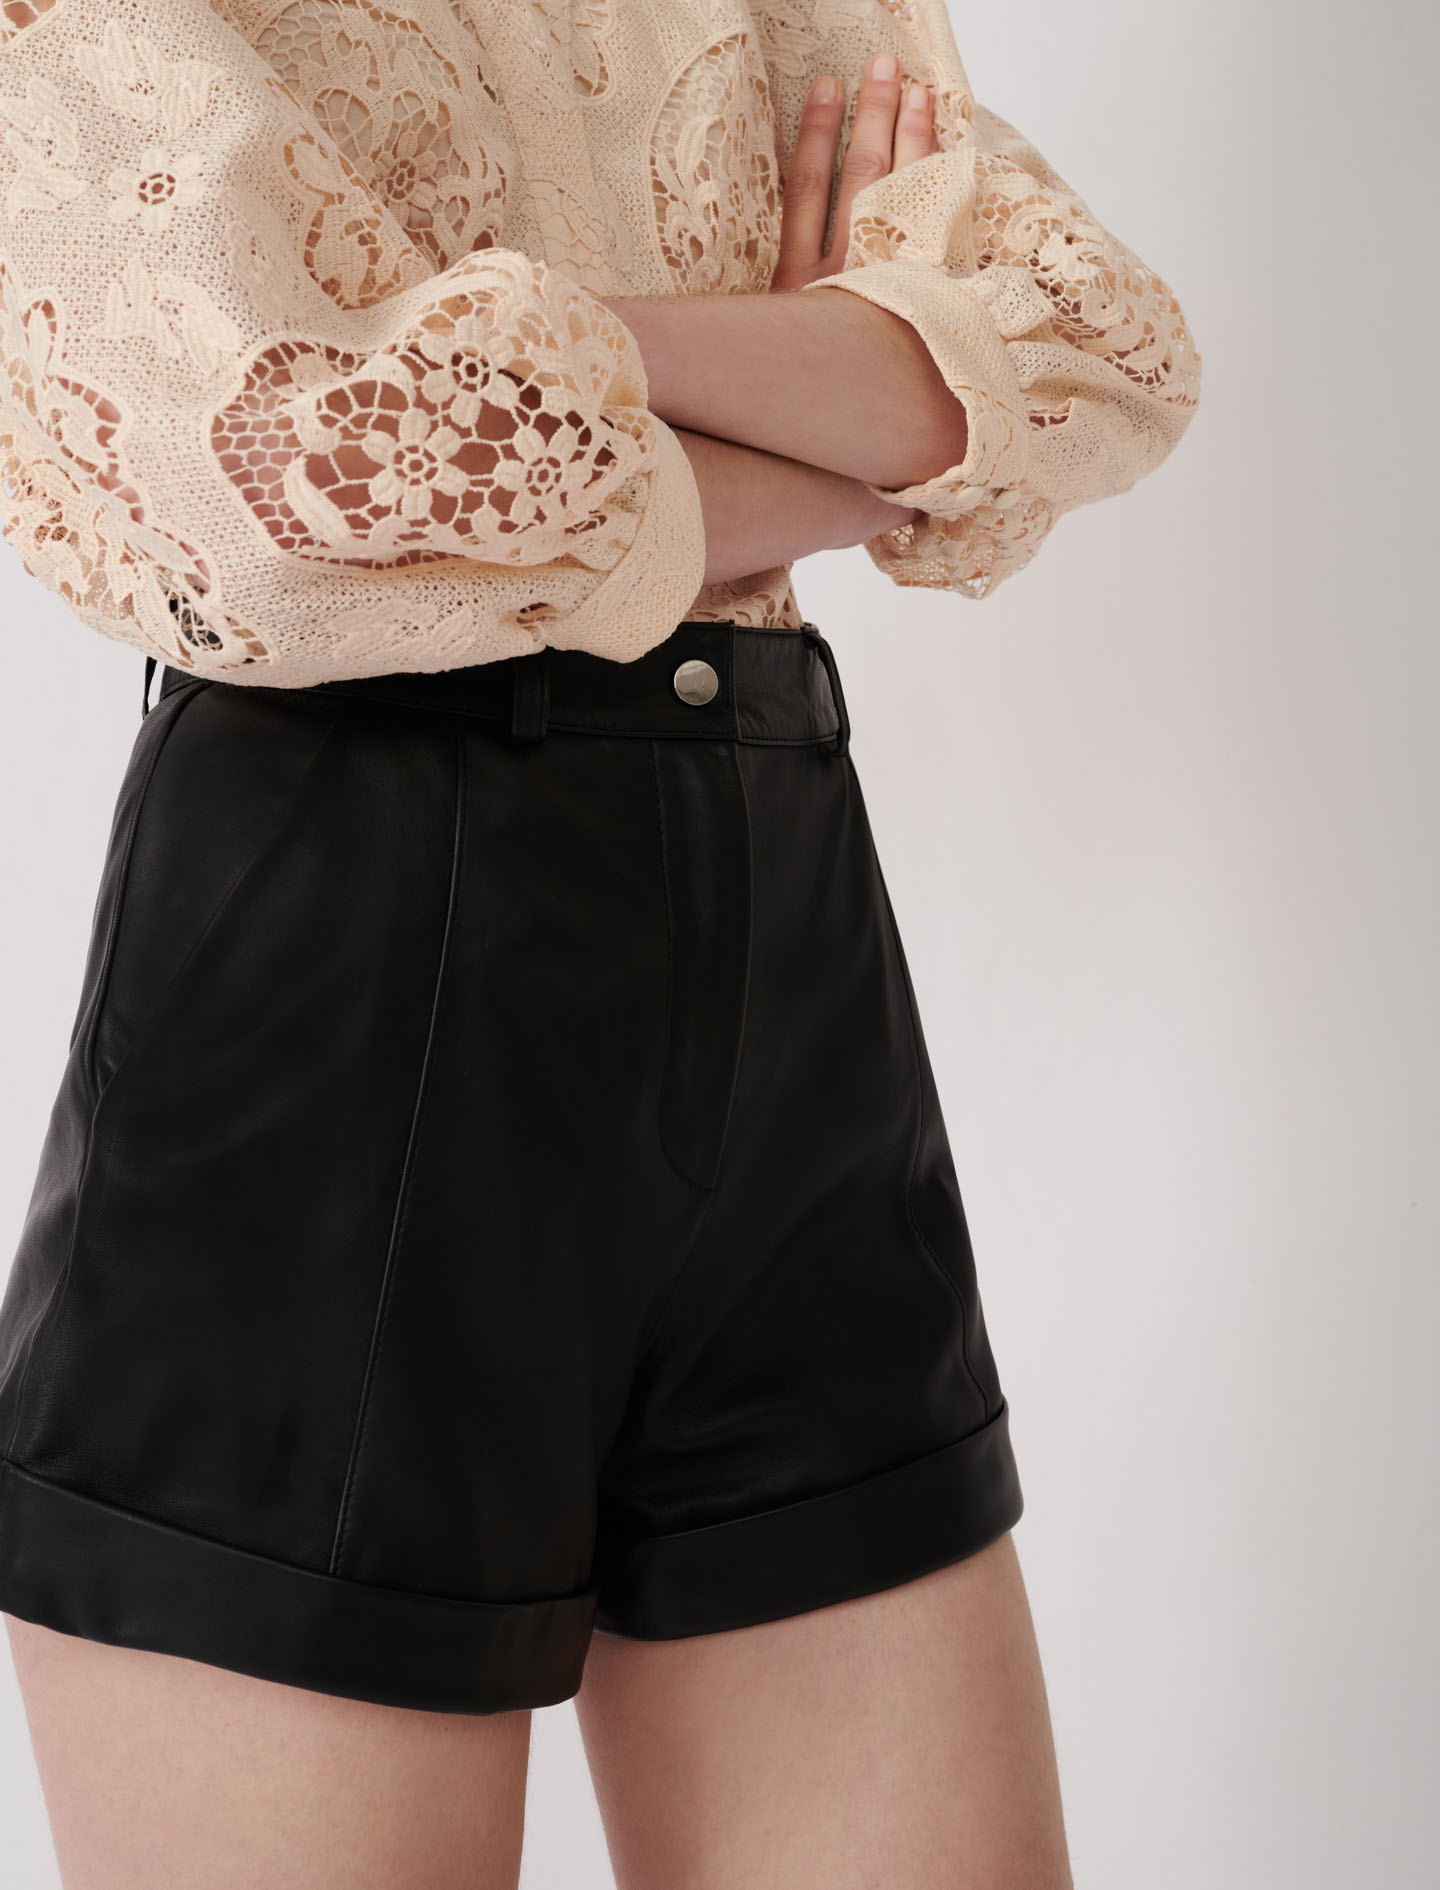 Cuffed Shorts With Topstitching - Black